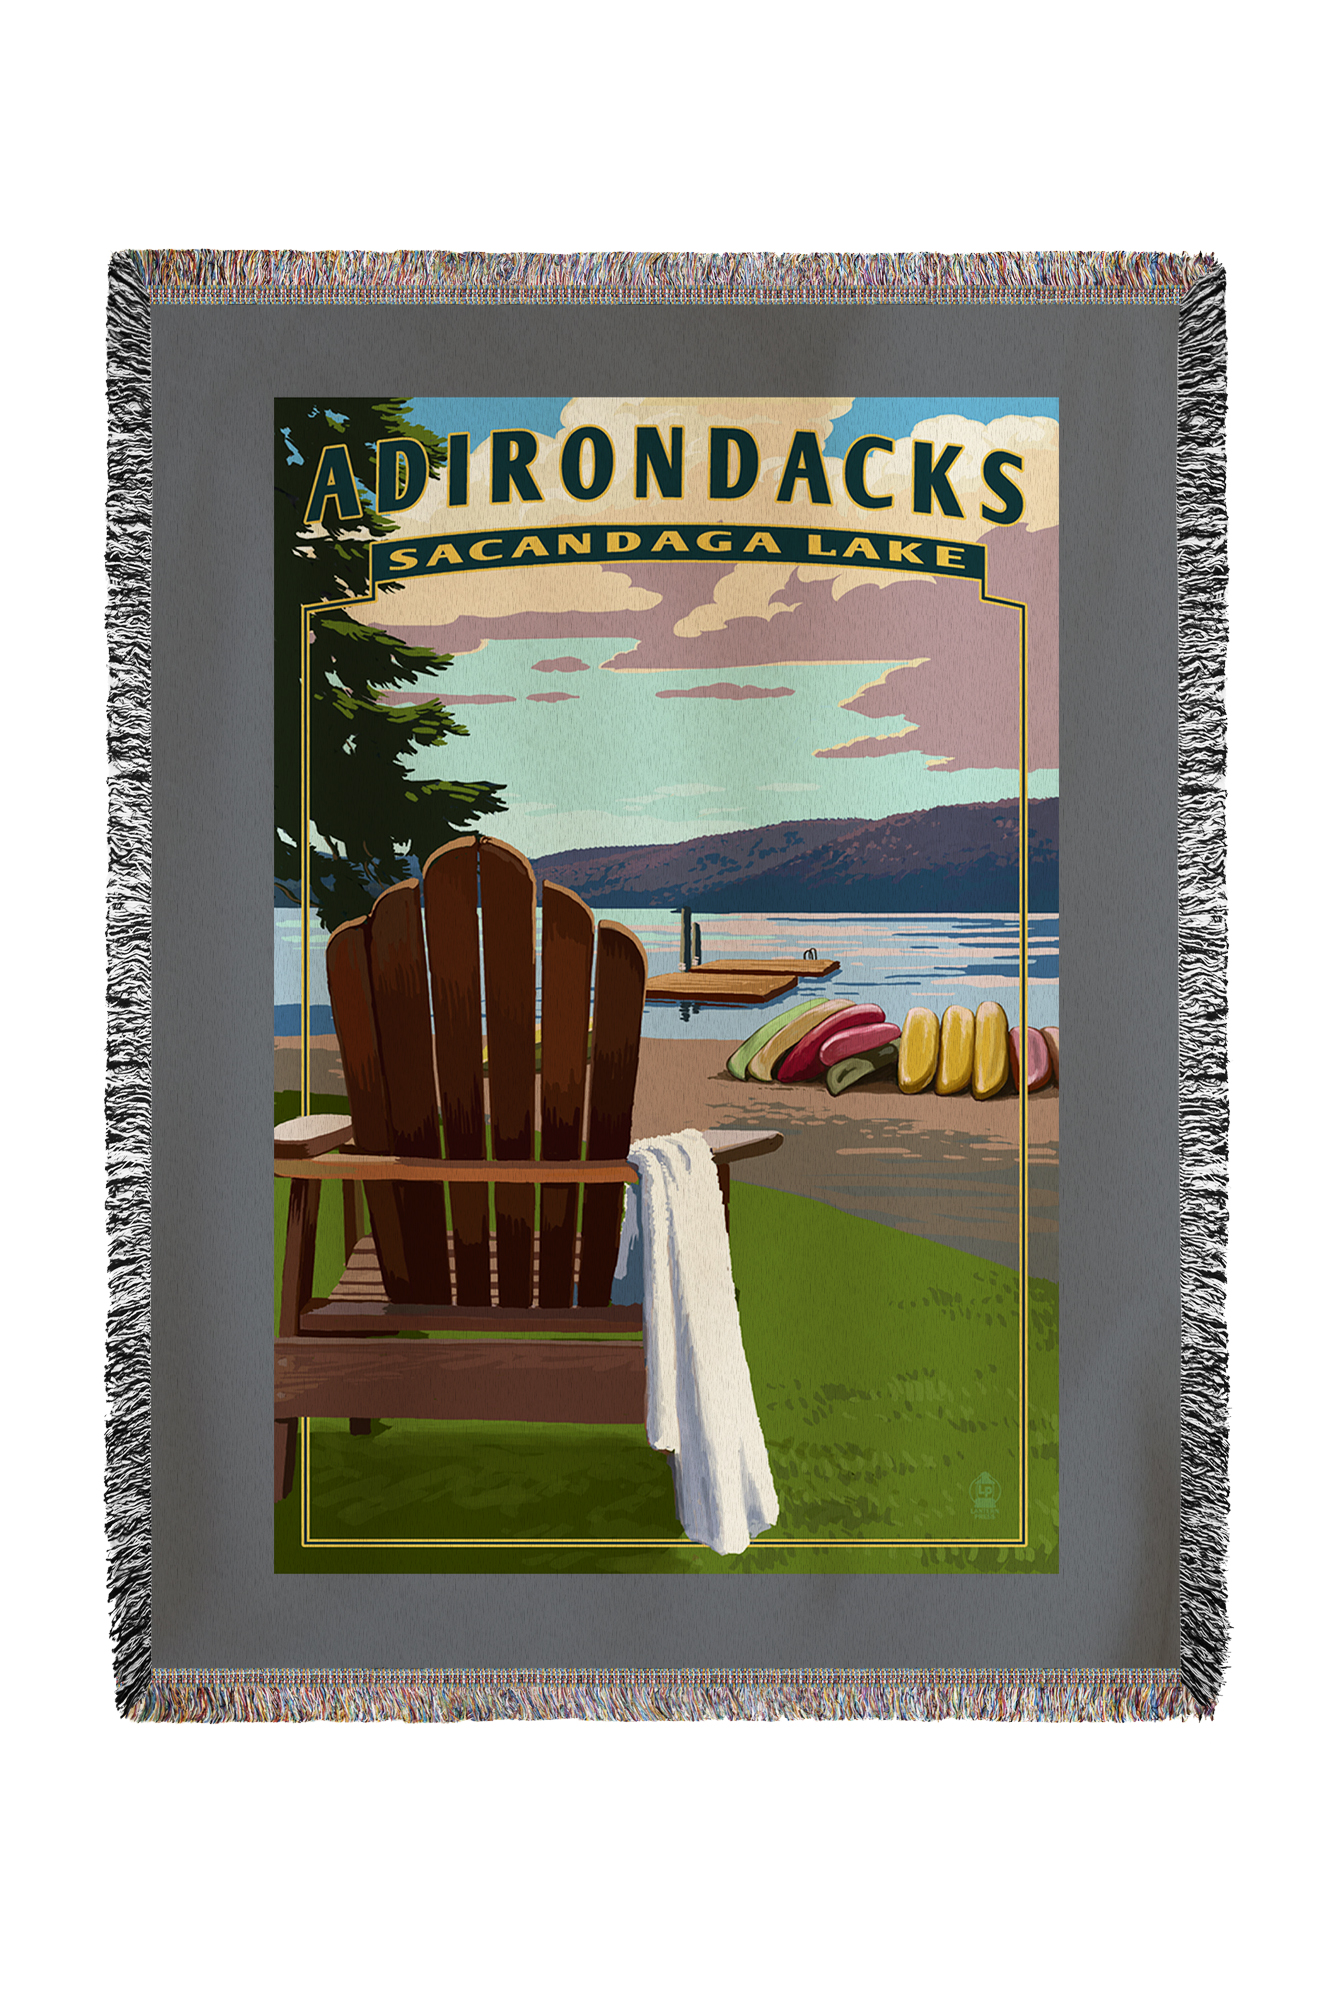 Adirondack Mountains, New York Sacandaga Lake Adirondack Chair Lantern Press Artwork (60x80 Woven Chenille Yarn Blanket) by Lantern Press